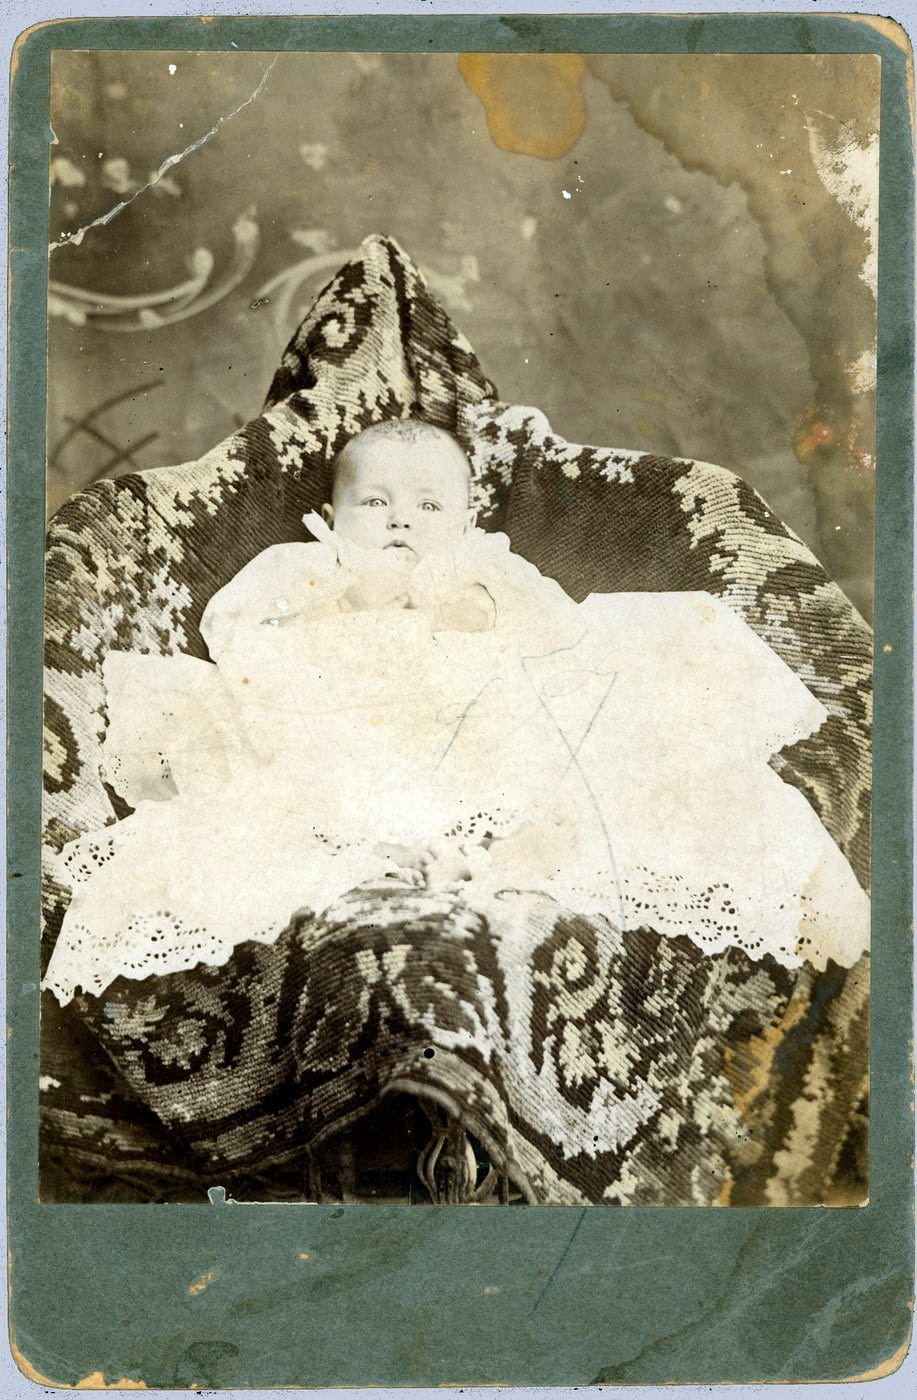 Antique baby portraits with a parent hiding under the cover